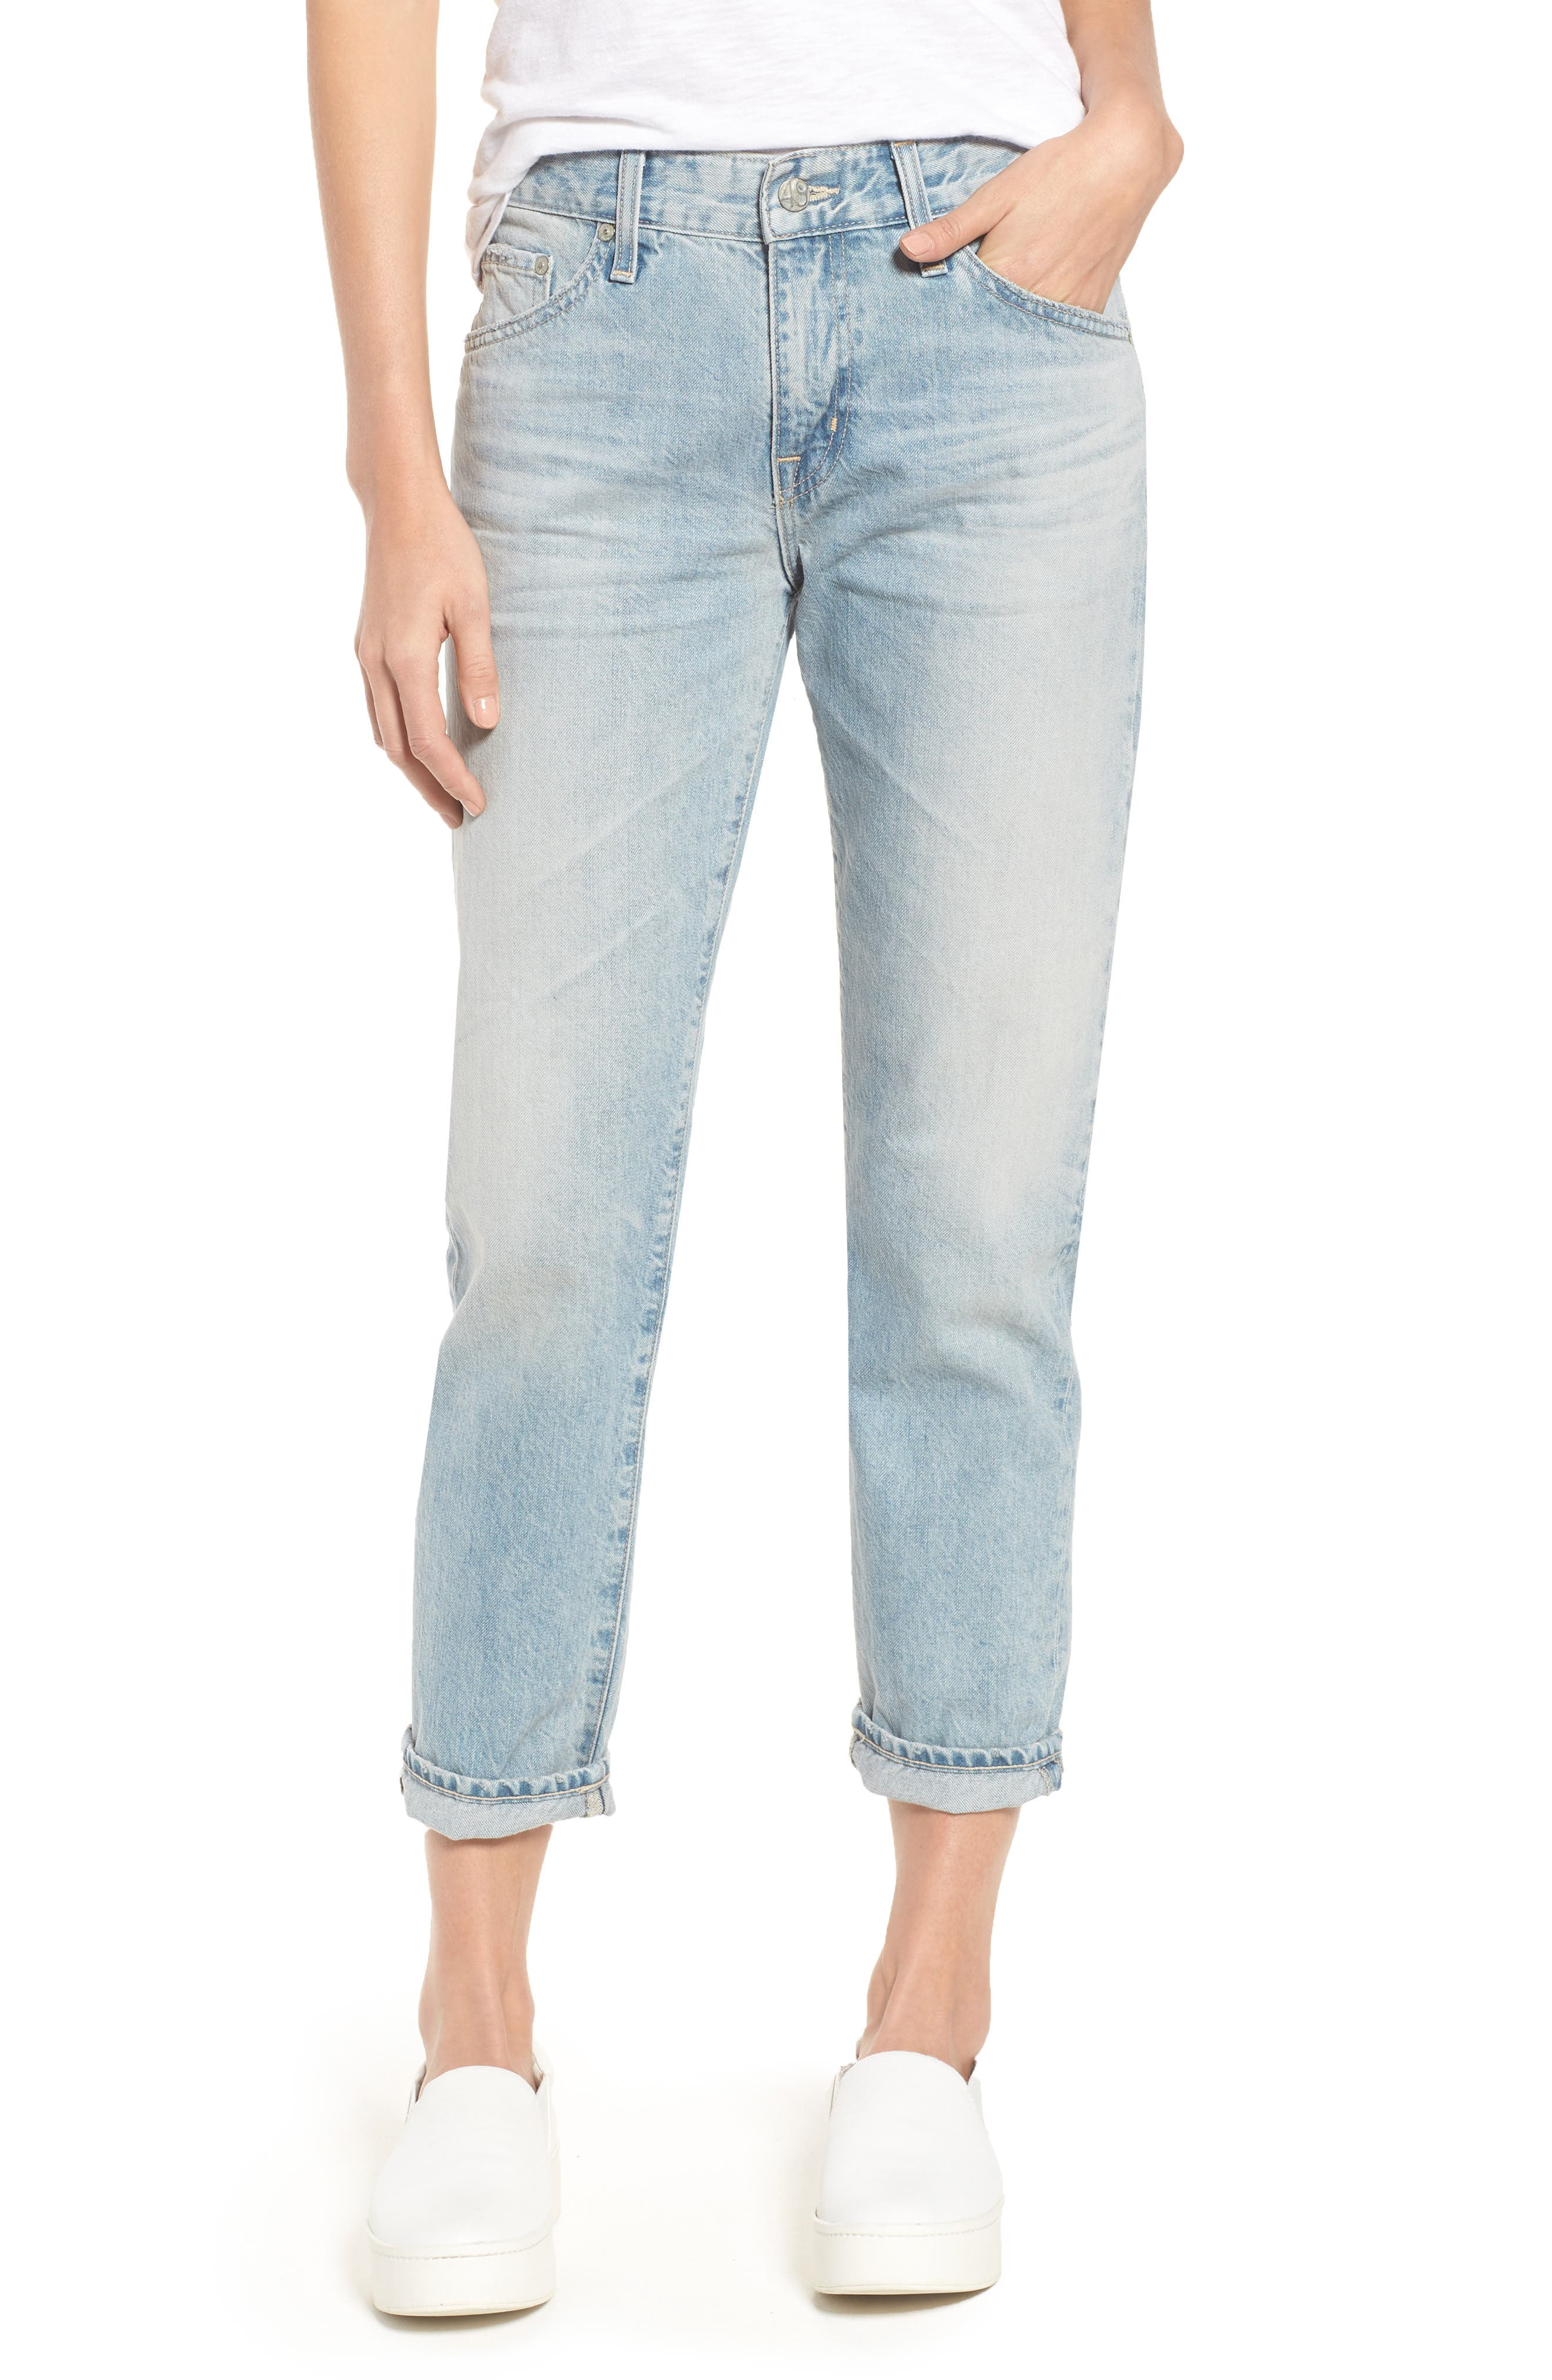 'The Ex Boyfriend' Slim Jeans,                         Main,                         color, 22 Years-Seafaring